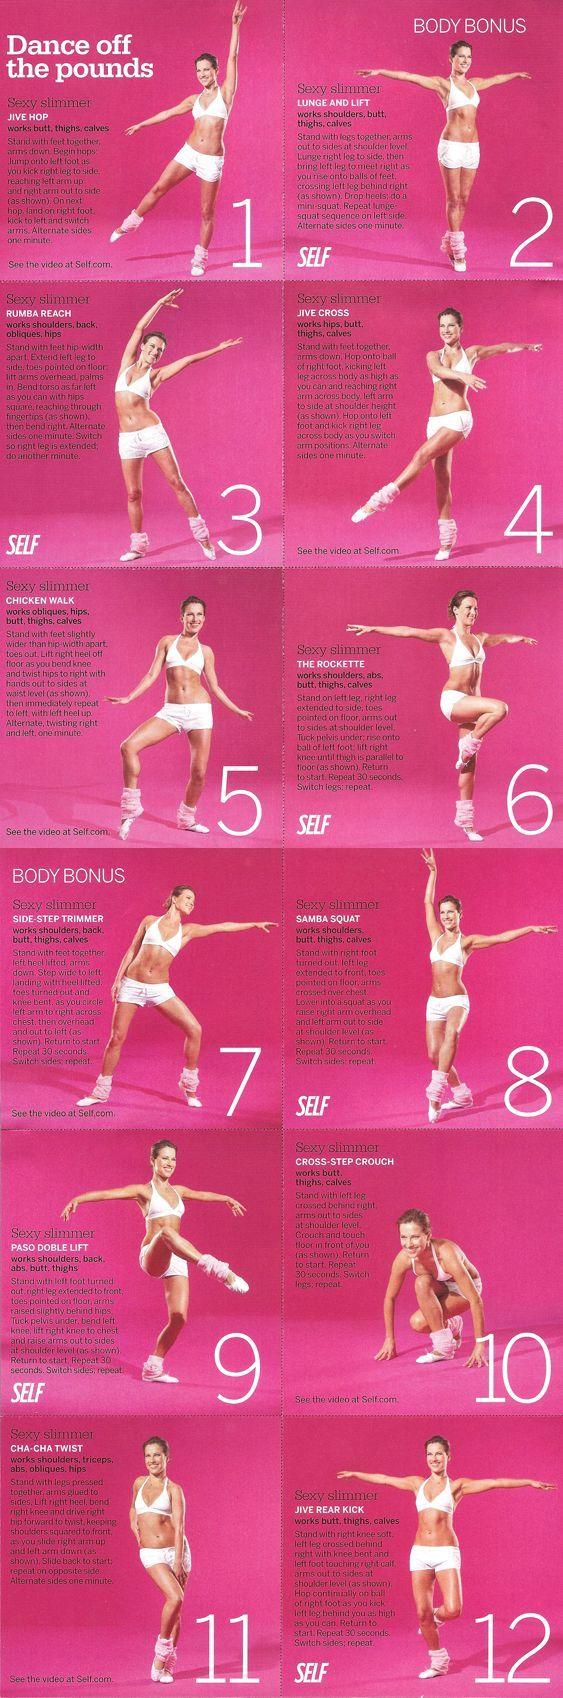 #Ballet inspired work out, you can dream and work out all at the same time! #workout